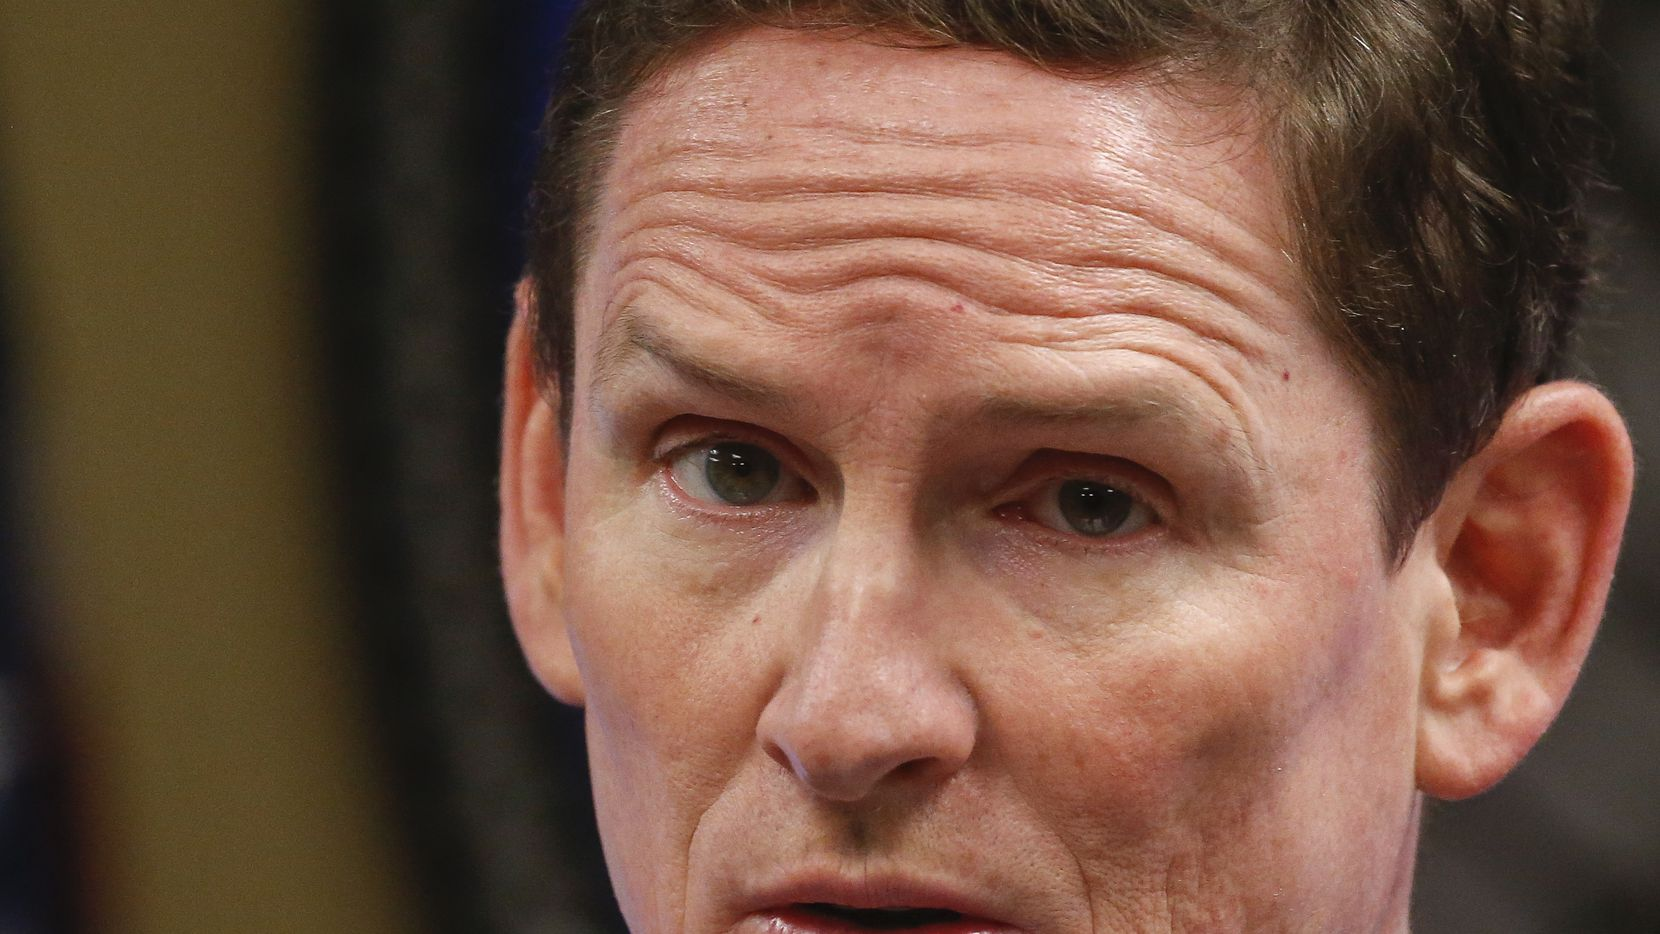 Dallas County Judge Clay Jenkins spoke with The Dallas Morning News editorial board Wednesday, May 20.